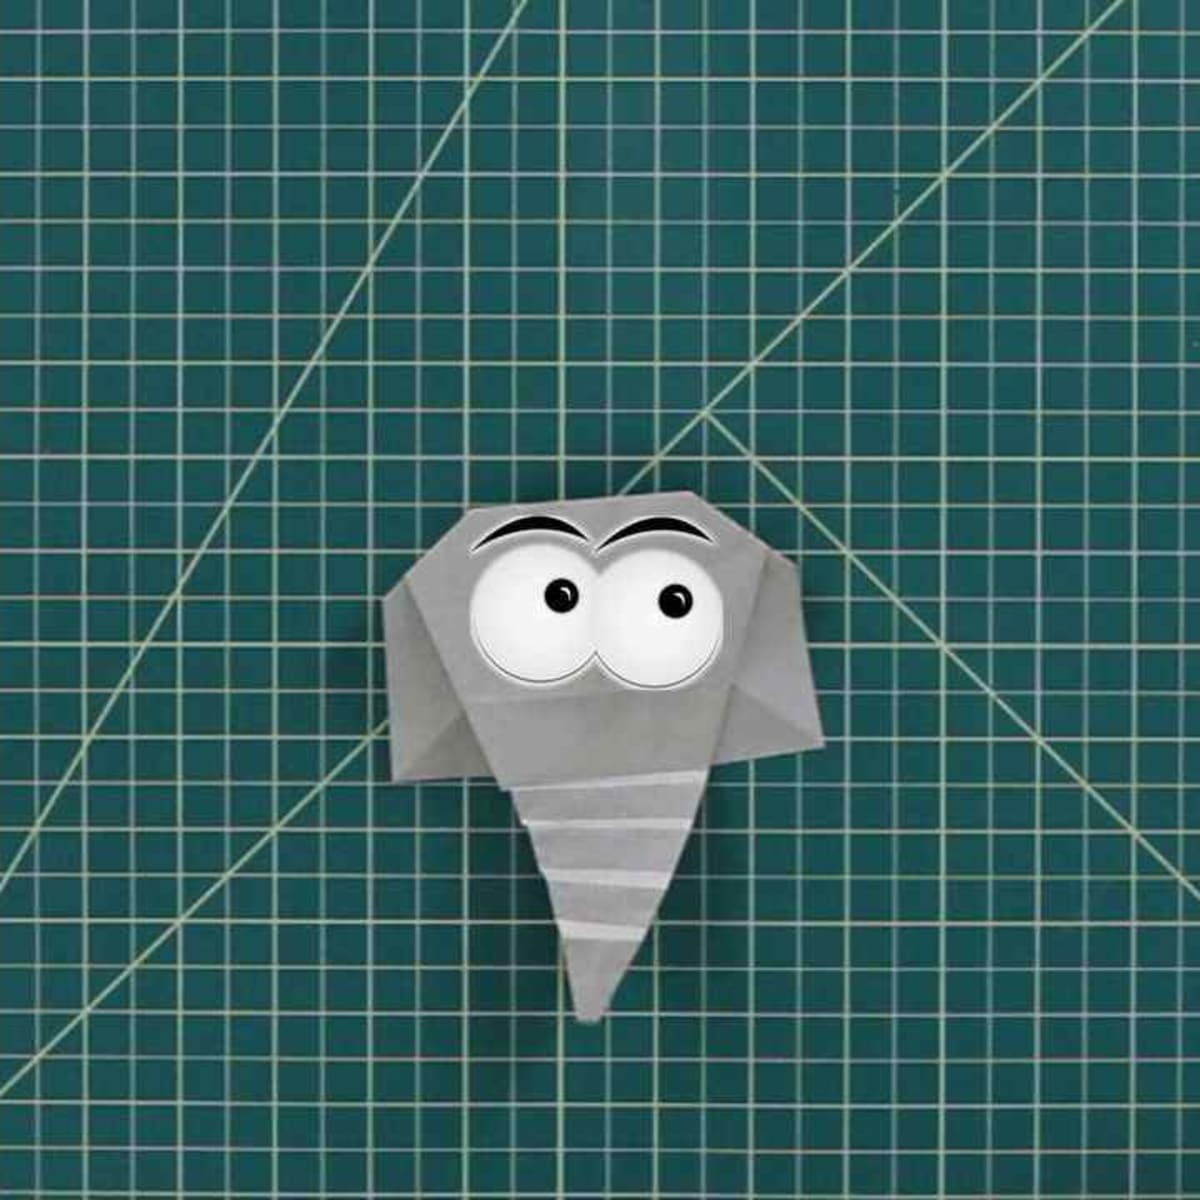 How to make a Paper Elephant: Easy Origami Elephant Instructions | 1200x1200